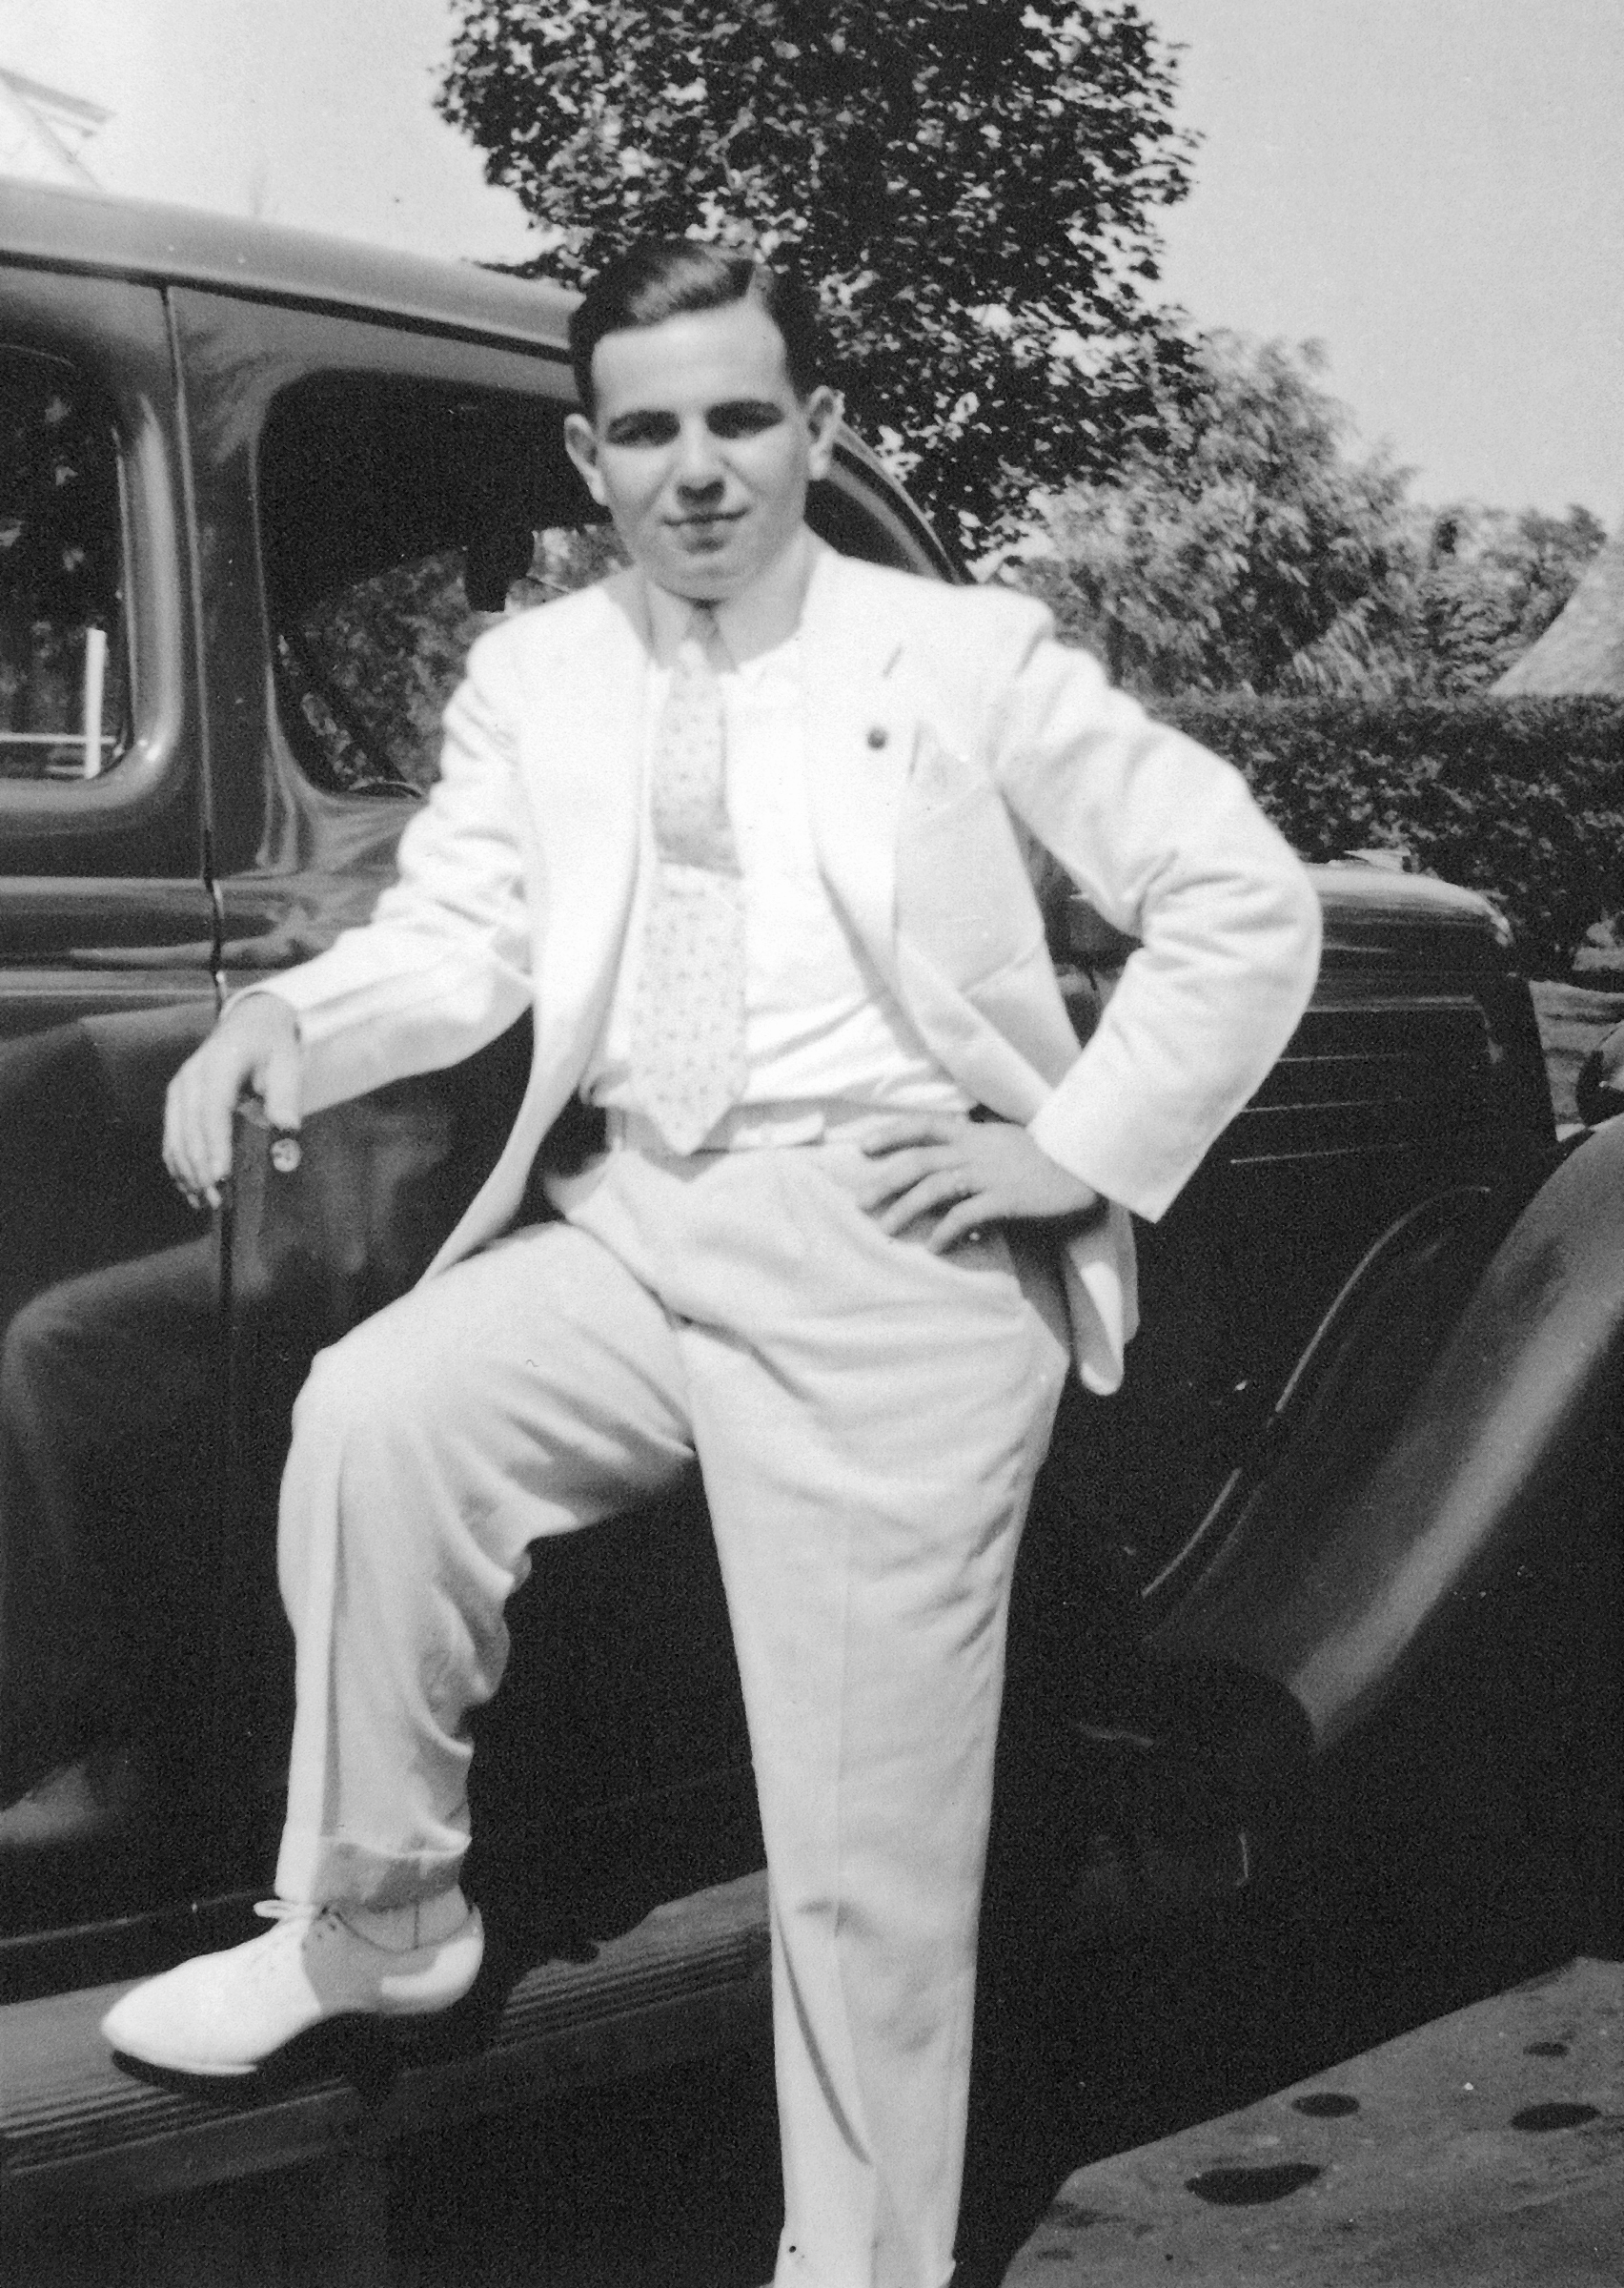 Kurt arriving in South Bend, 1930